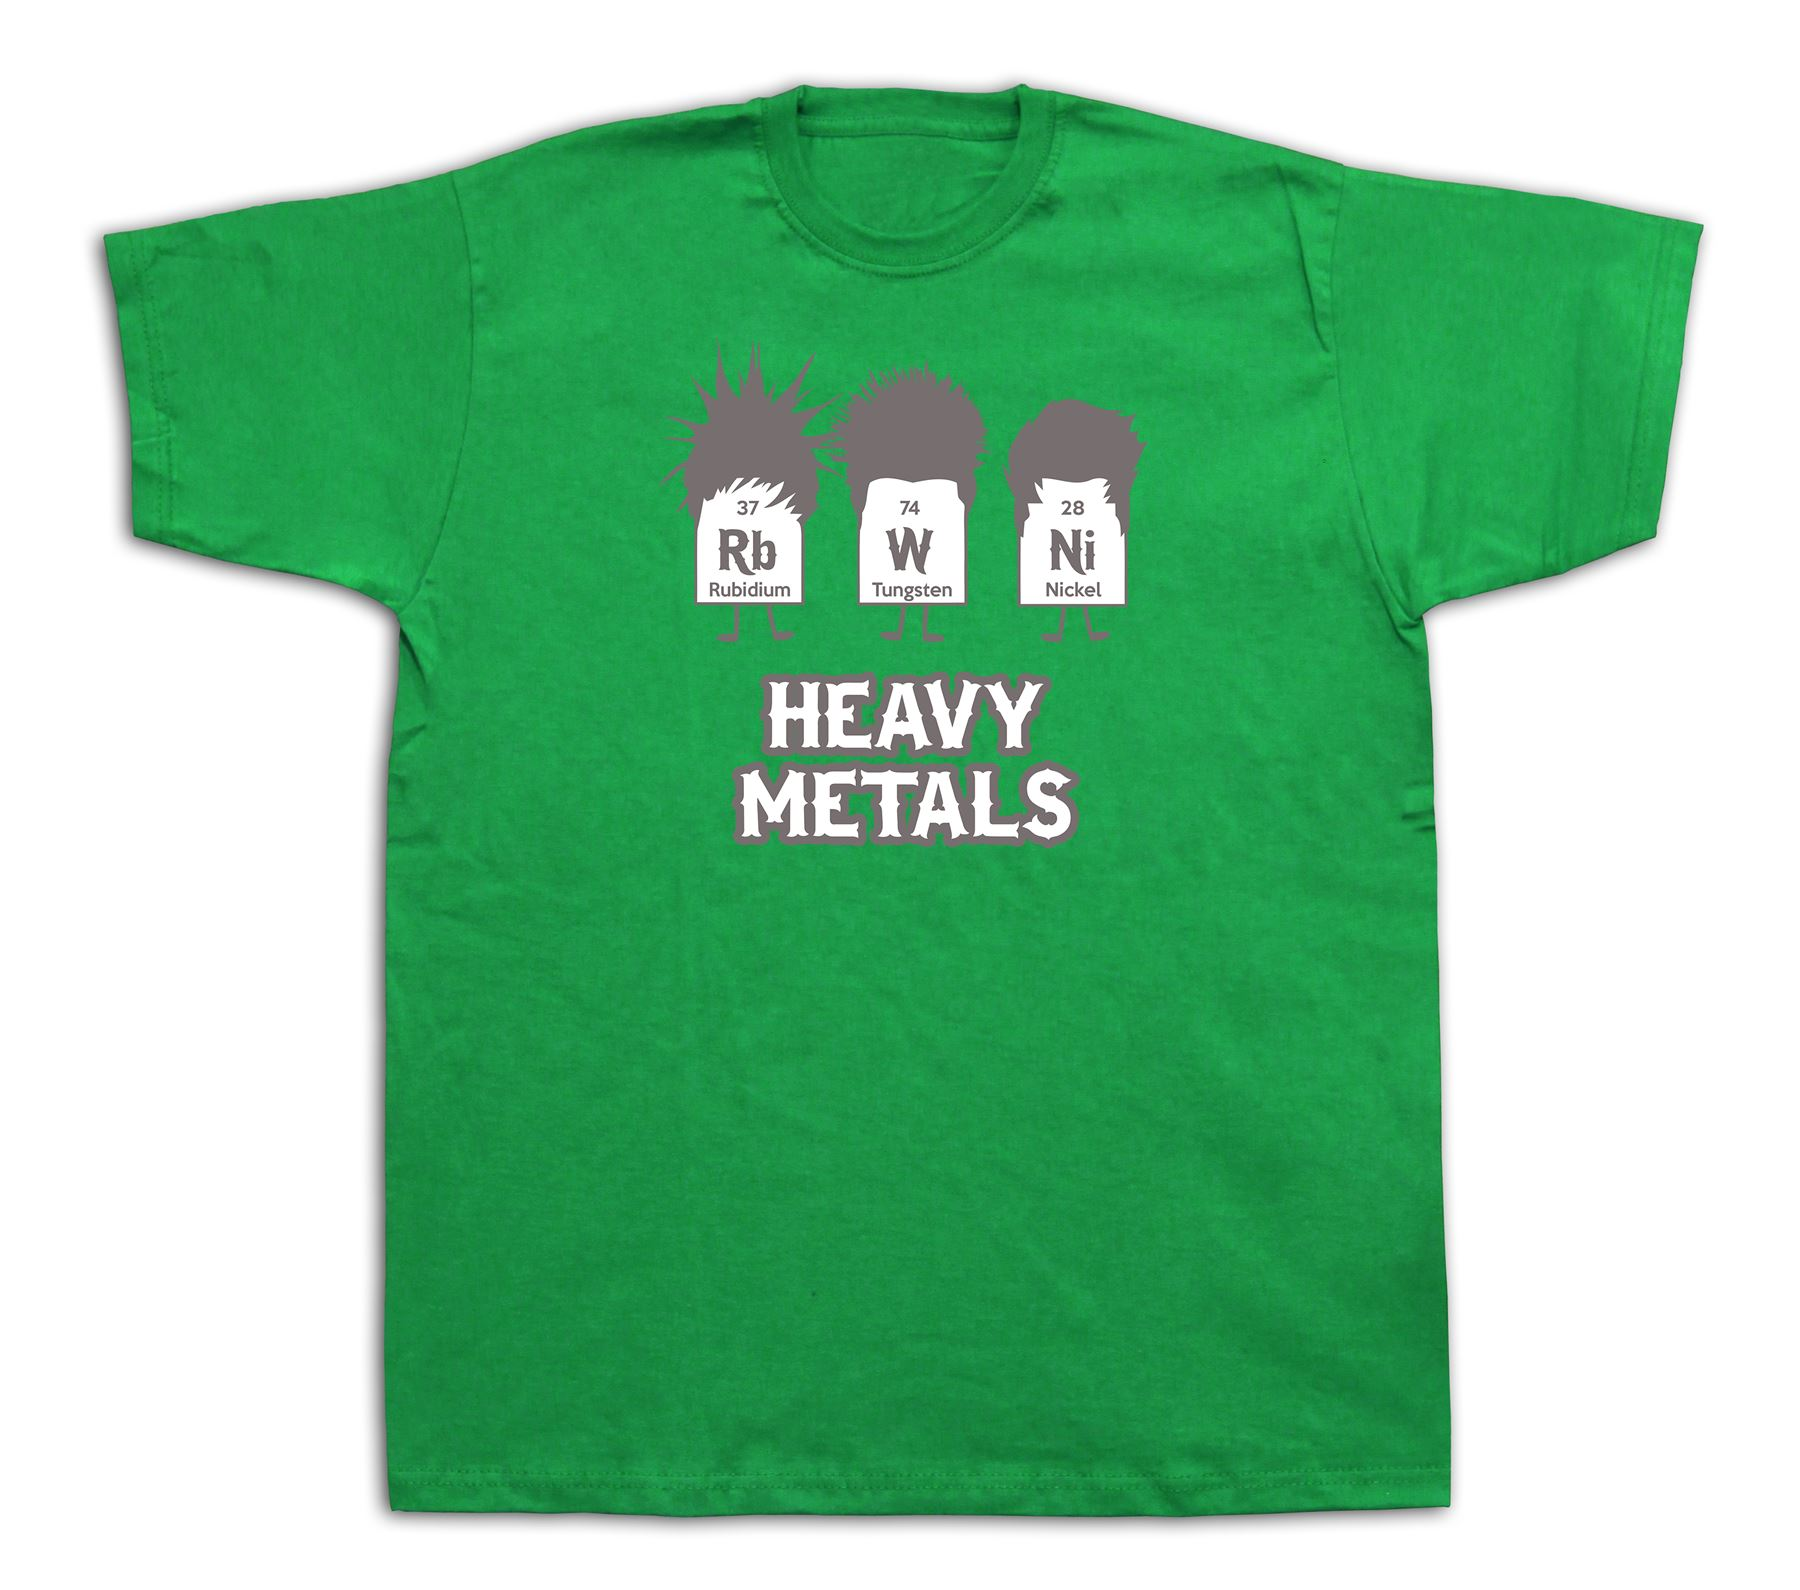 New heavy metals periodic table list periodic heavy table list periodic metals table rock spring chemical chemistry heavy metals sign shirt casual t gamestrikefo Gallery